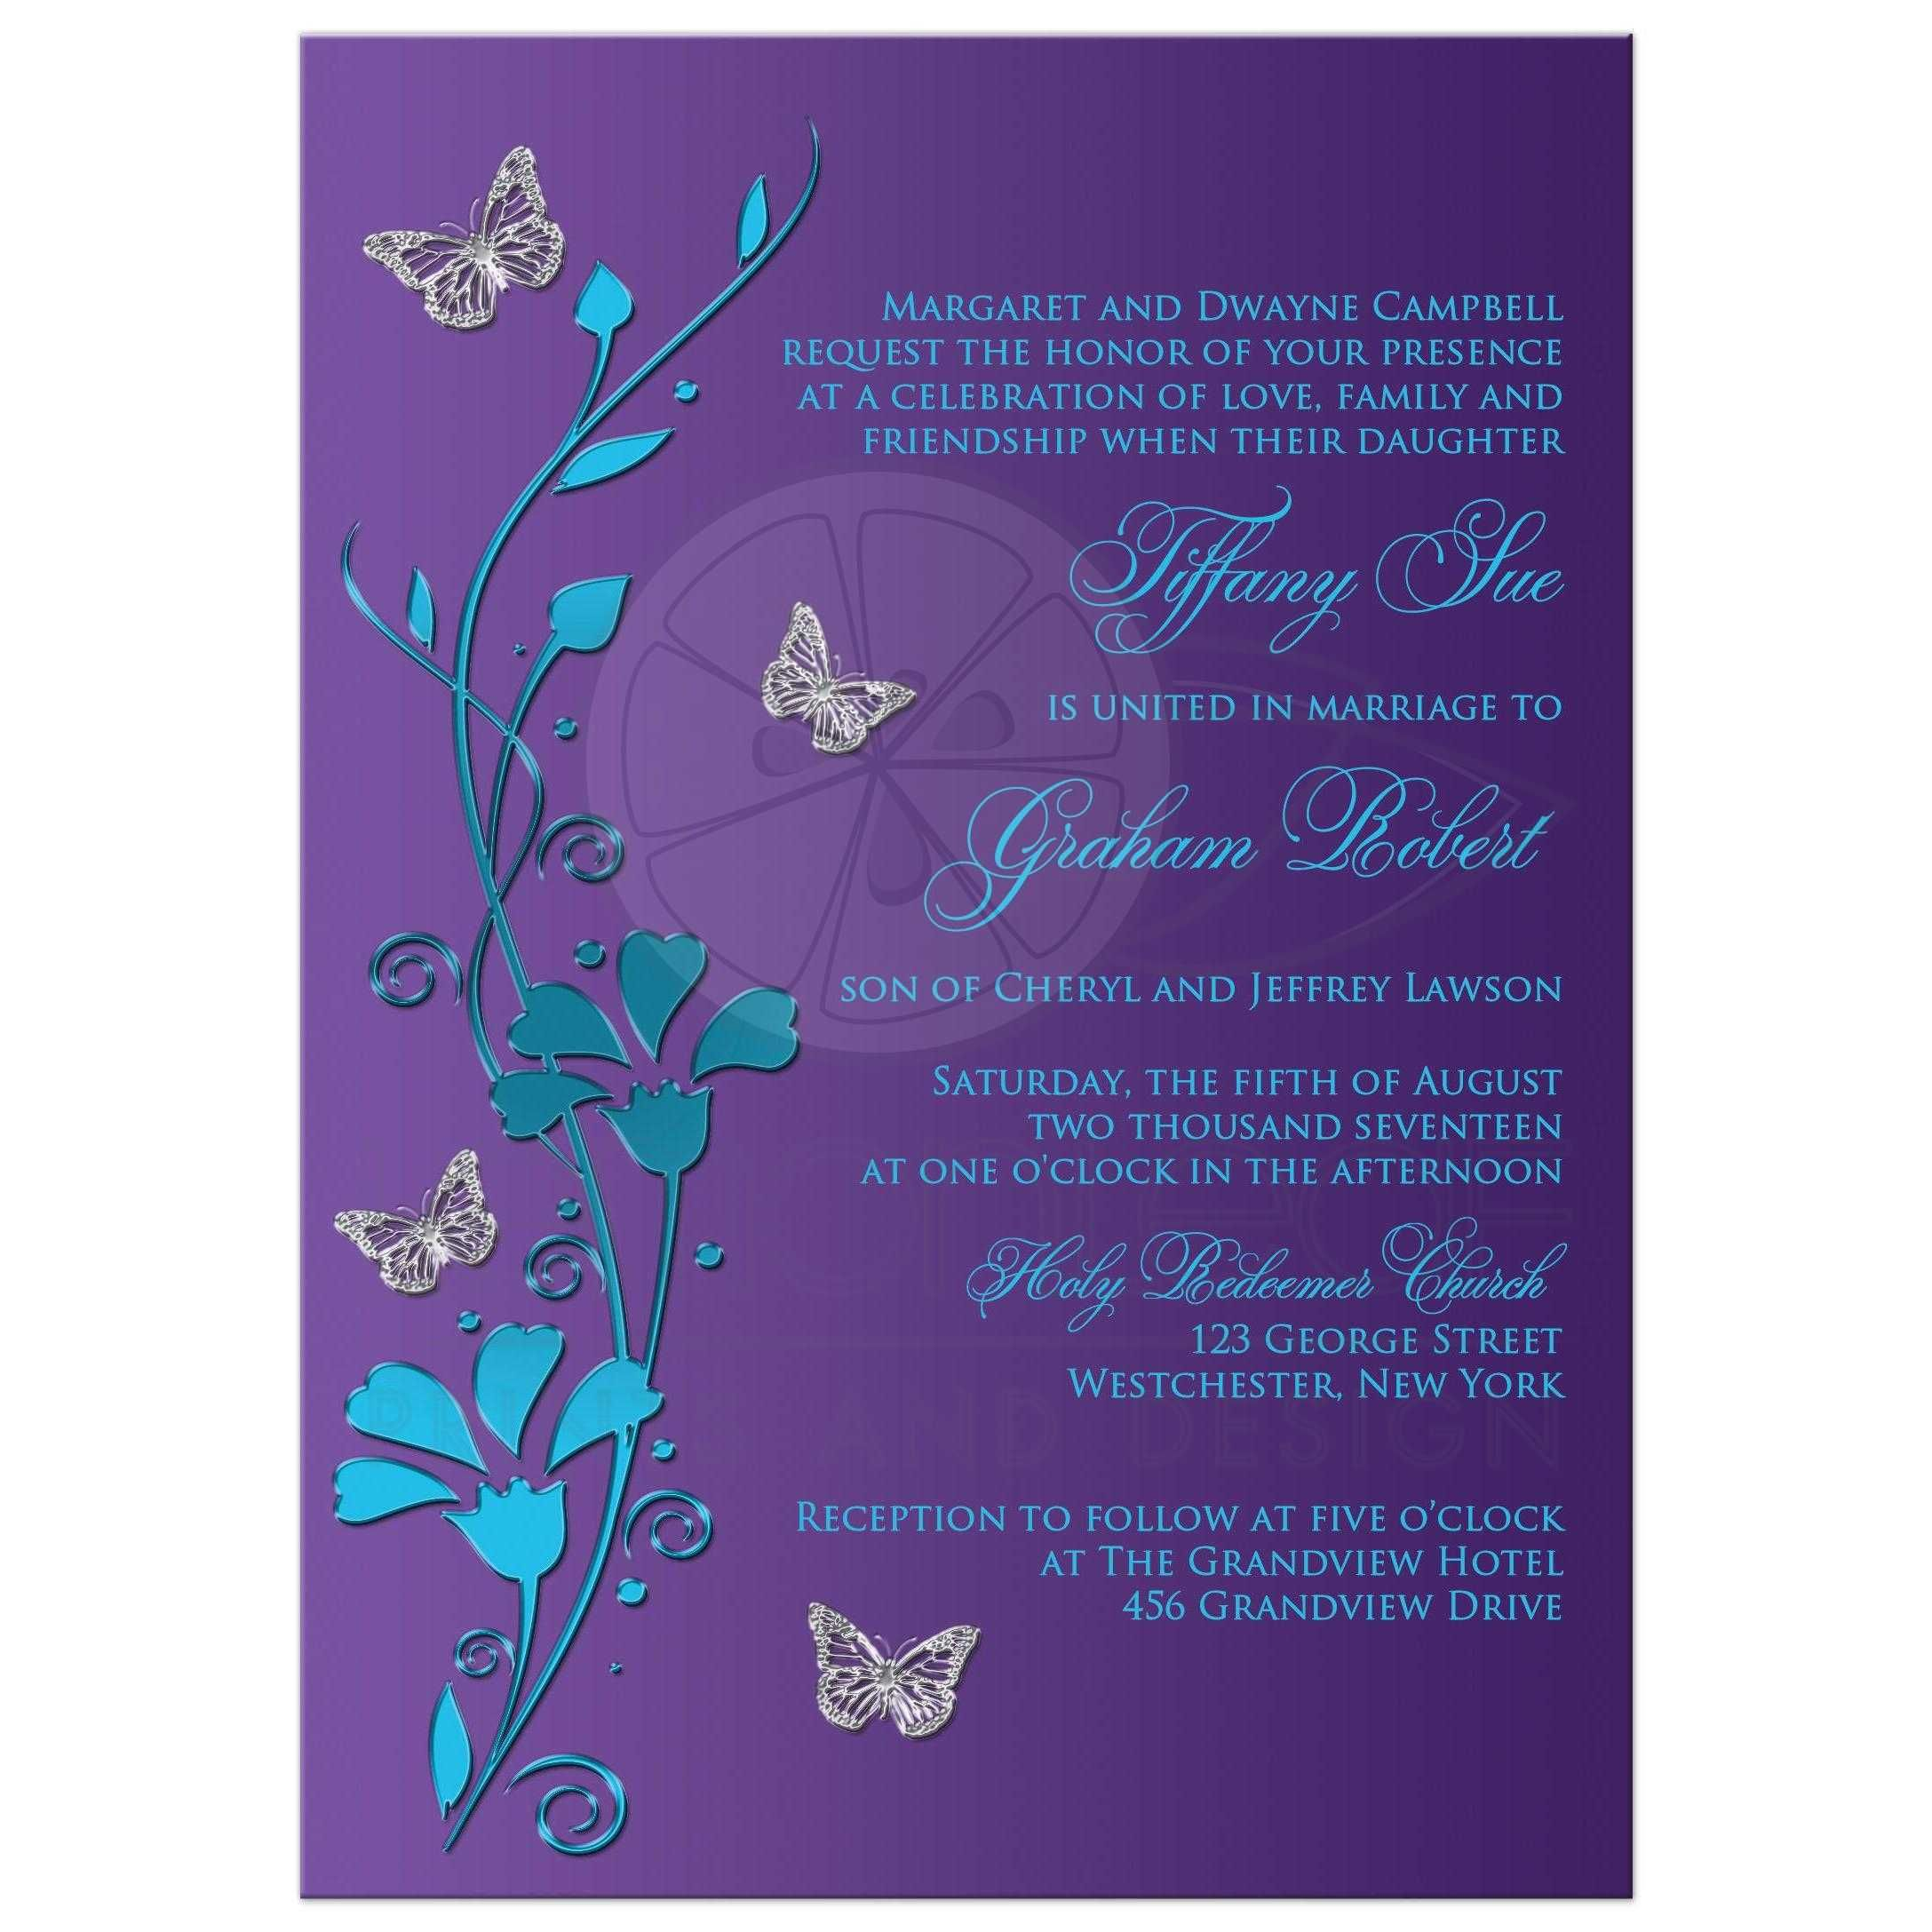 Wedding invitation turquoise blue purple silver flowers this modern turquoise or teal blue and purple floral wedding invitation has metallic look flowers and silver butterflies on it that would be perfect for a izmirmasajfo